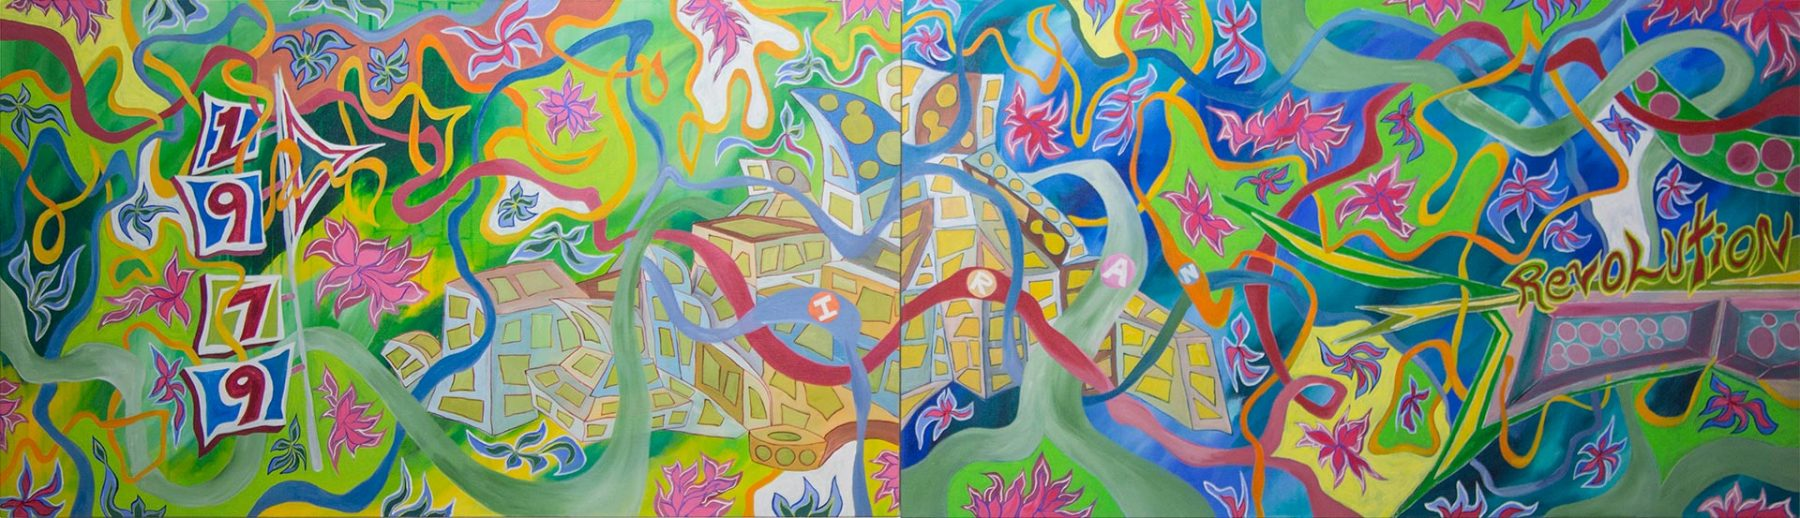 Revolutionary Diner (2013) acrylic on canvas (3 panels) 0.71H x 2.54W meters